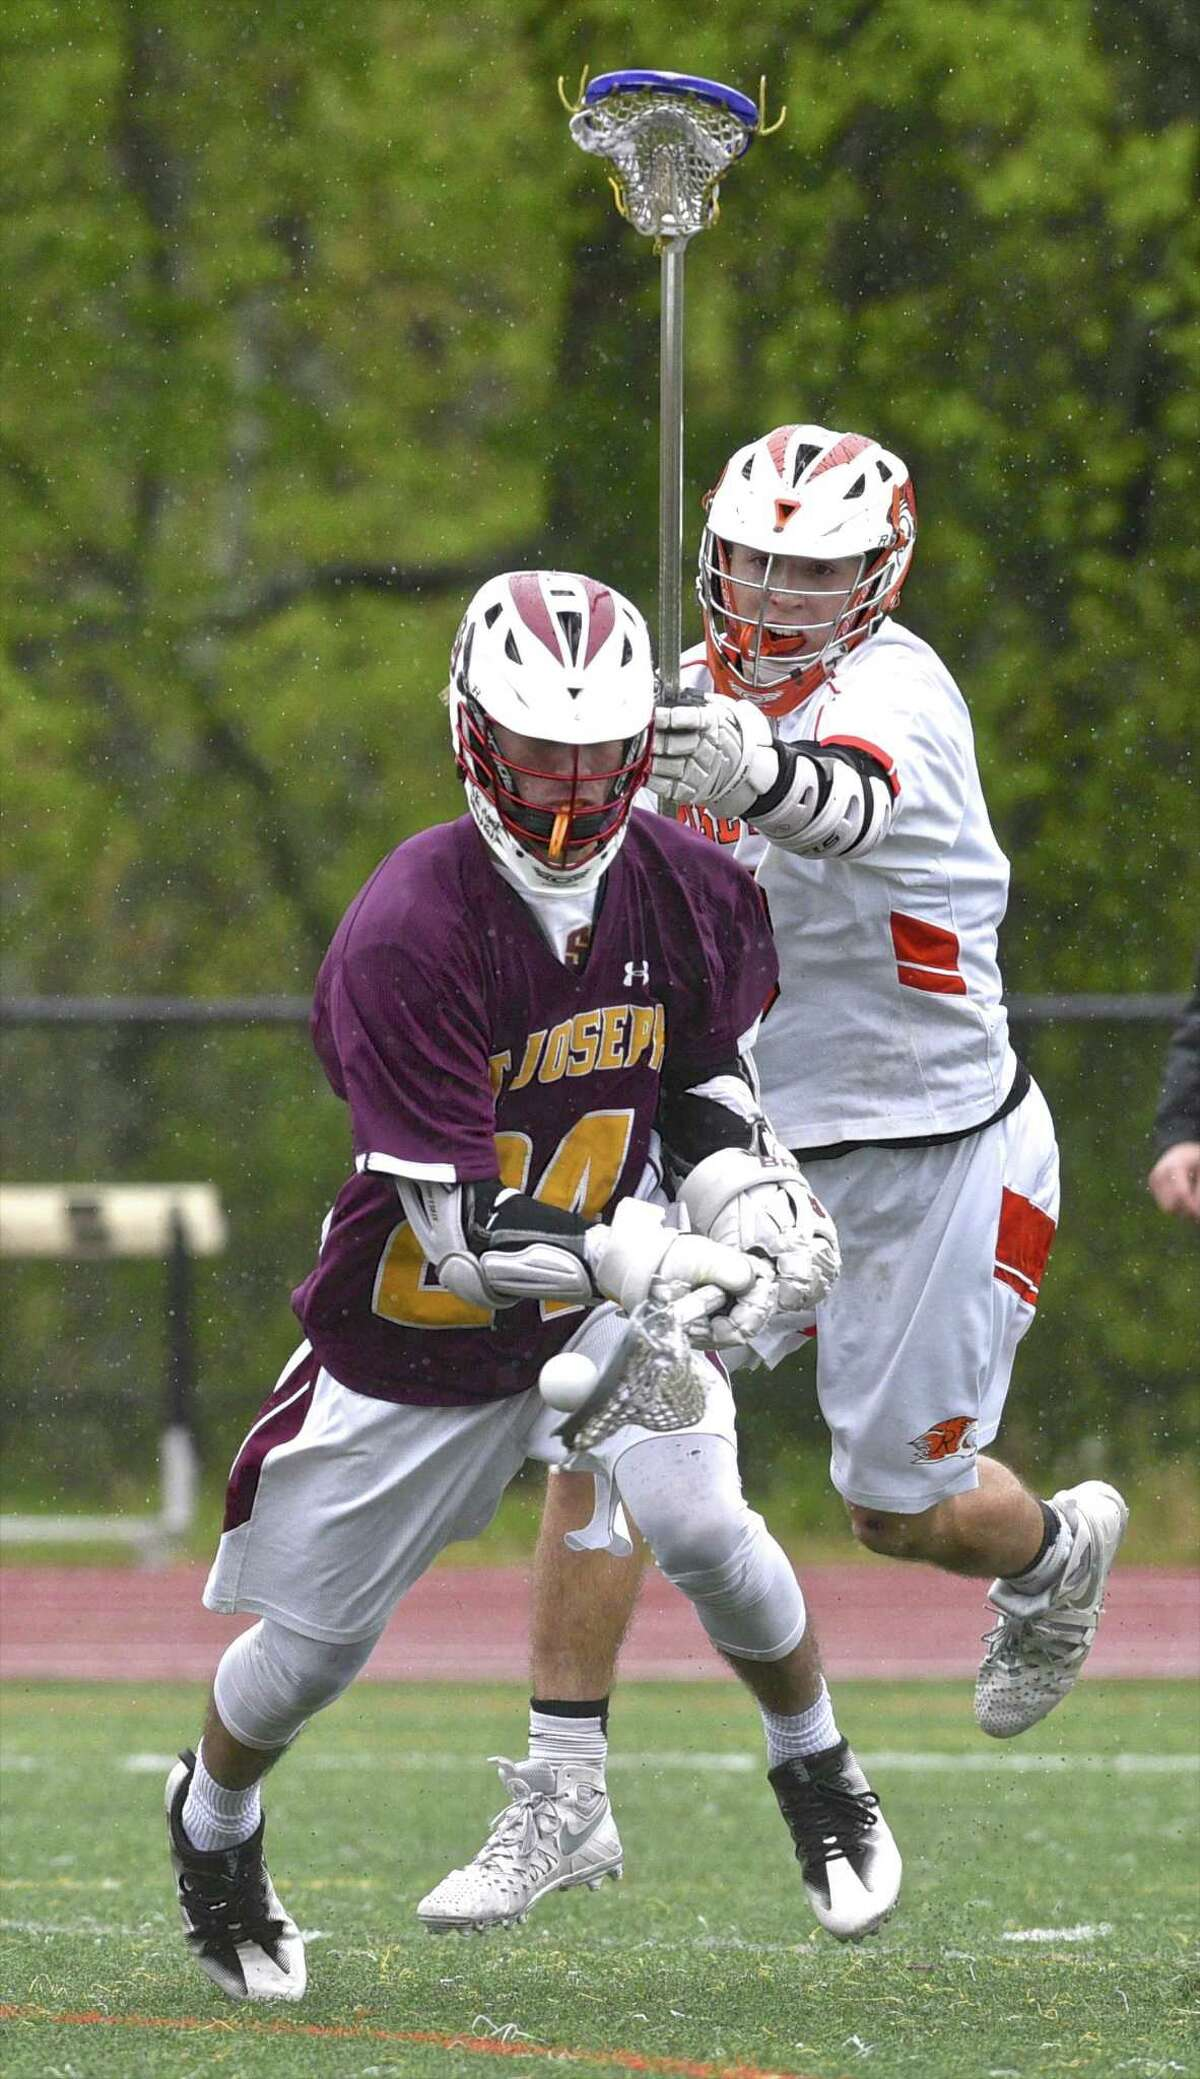 St Joseph's Jared Newel (24) chases the ball while Ridgefield defended Luke Gaydos (10) chases in the boys lacrosse game between St Joseph and Ridgefield high schools, on Saturday afternoon, May 13, 2017, at Ridgefield High School, in Ridgefield, Conn.